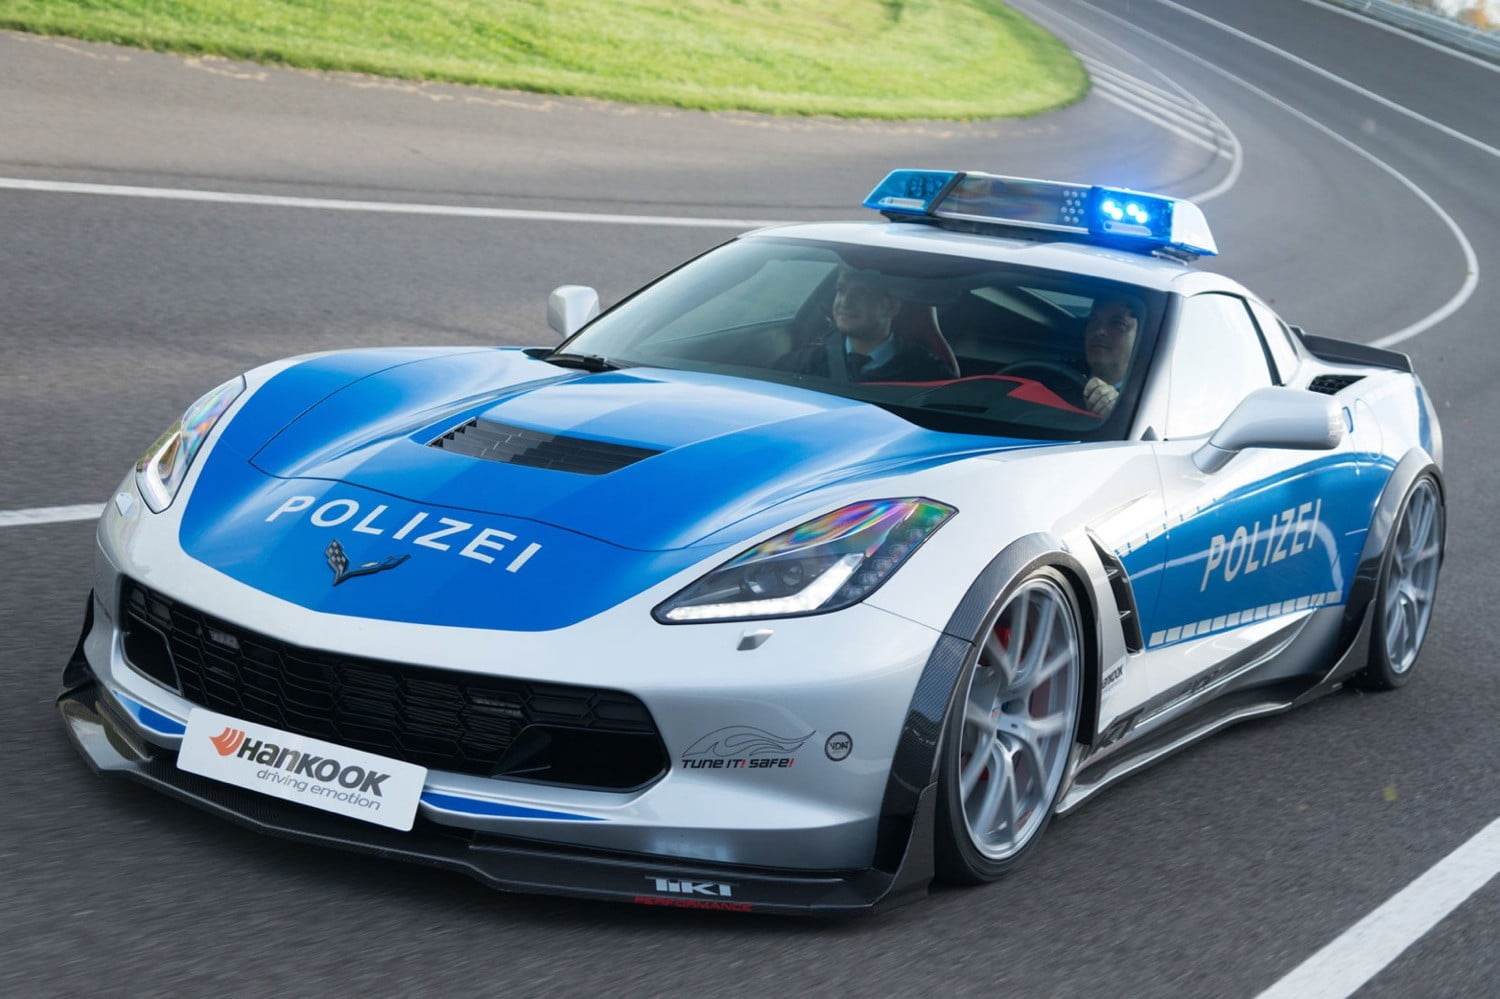 Rest Easy Speeders This Chevy Corvette Police Car Is On A - Sports cars vs police